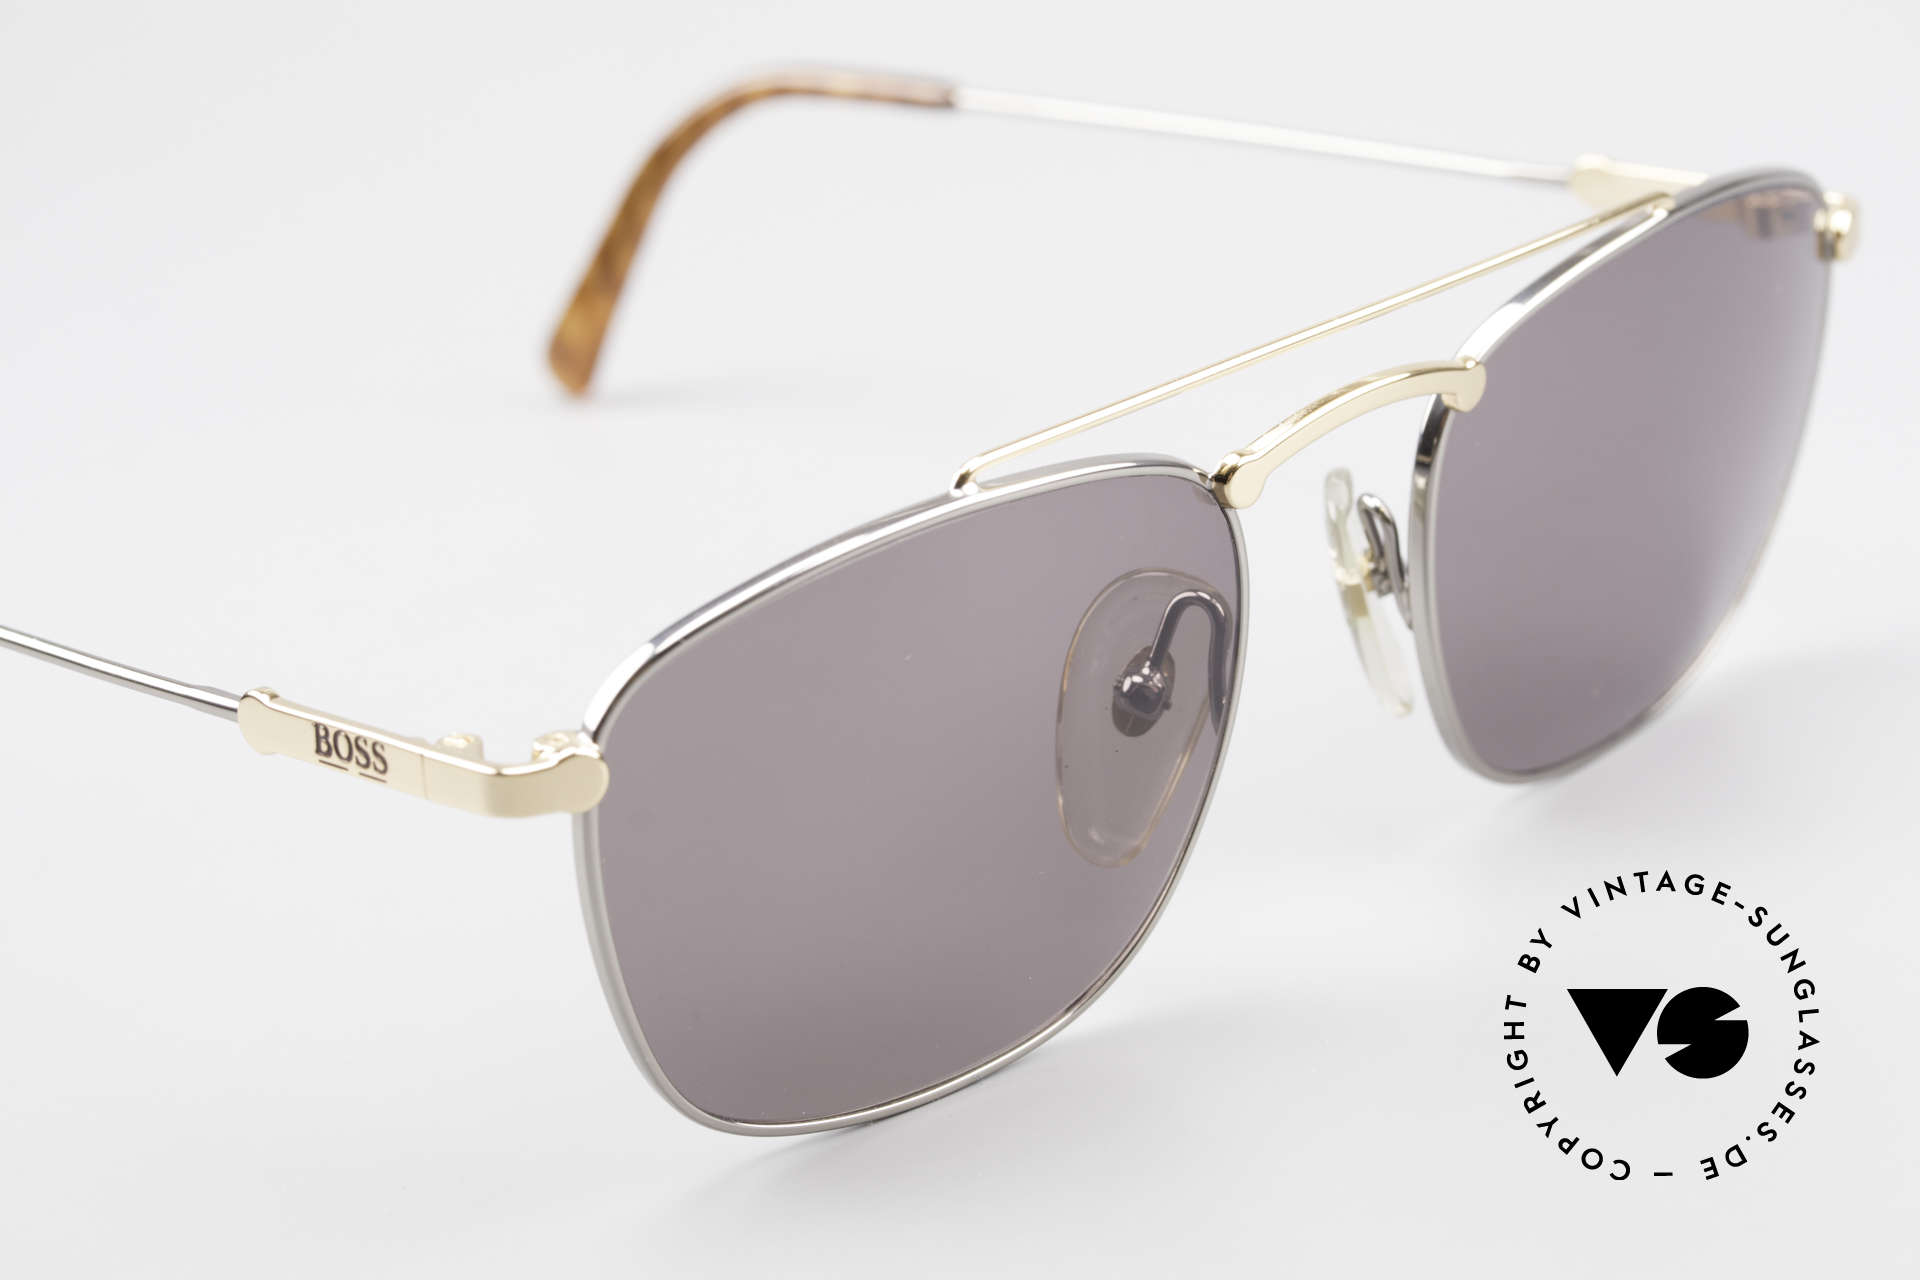 BOSS 5172 True Vintage 90's Sunglasses, NO RETRO SHADES; but a 25 years old ORIGINAL!, Made for Men